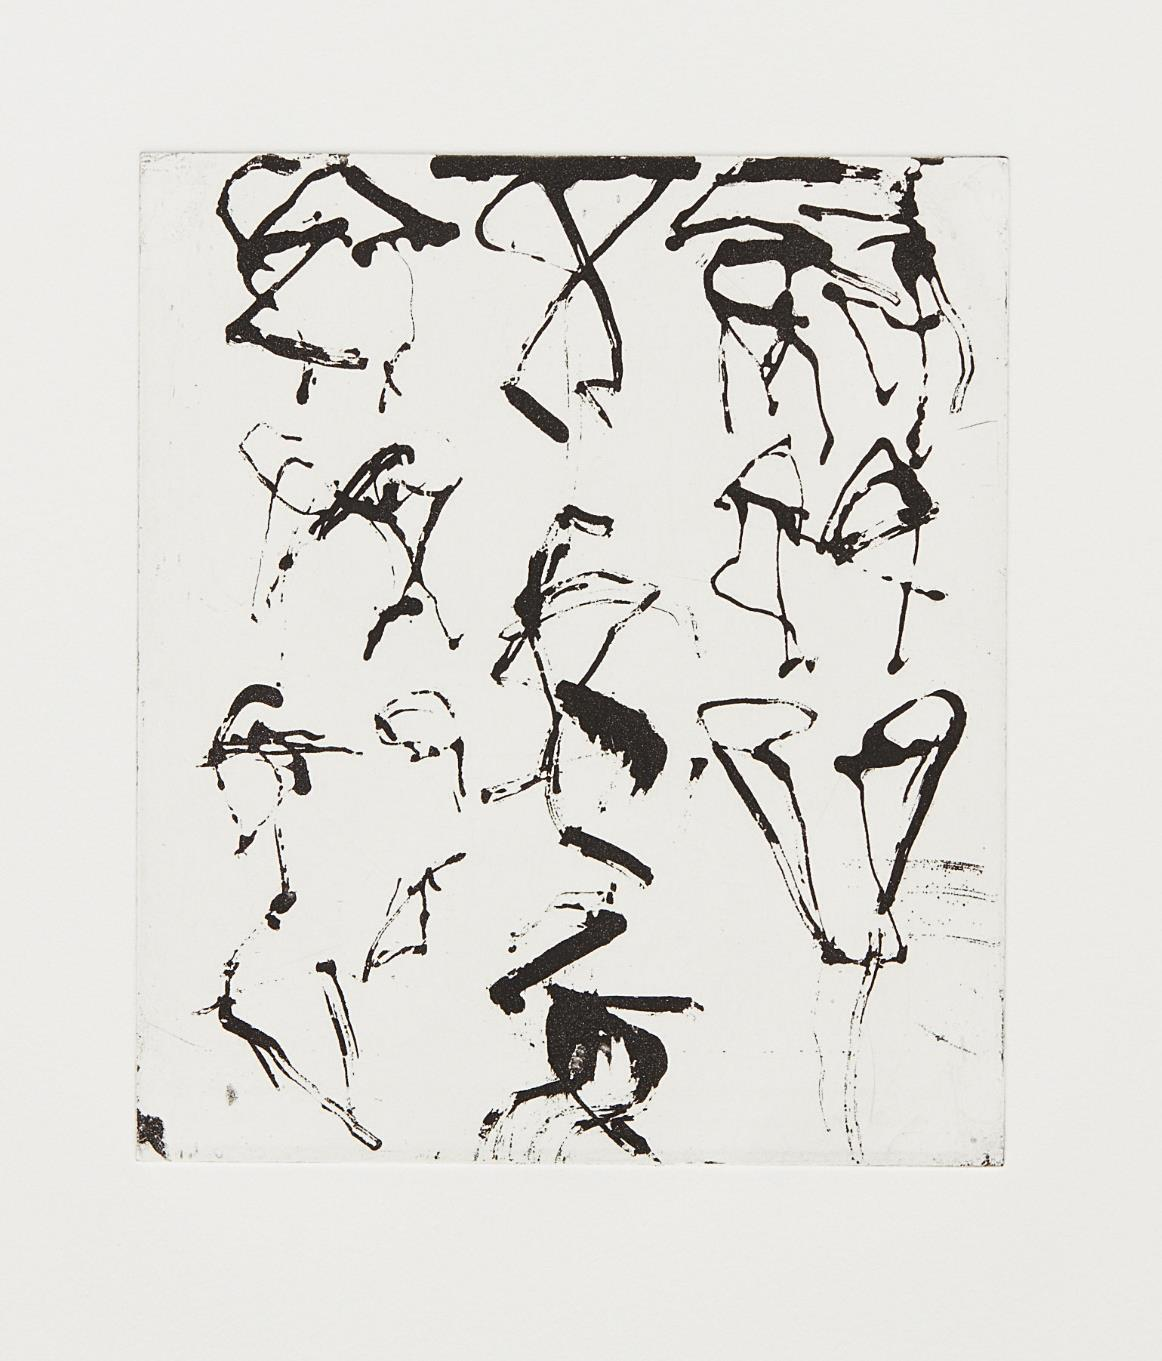 Brice Marden-Etchings to Rexroth #5-1986